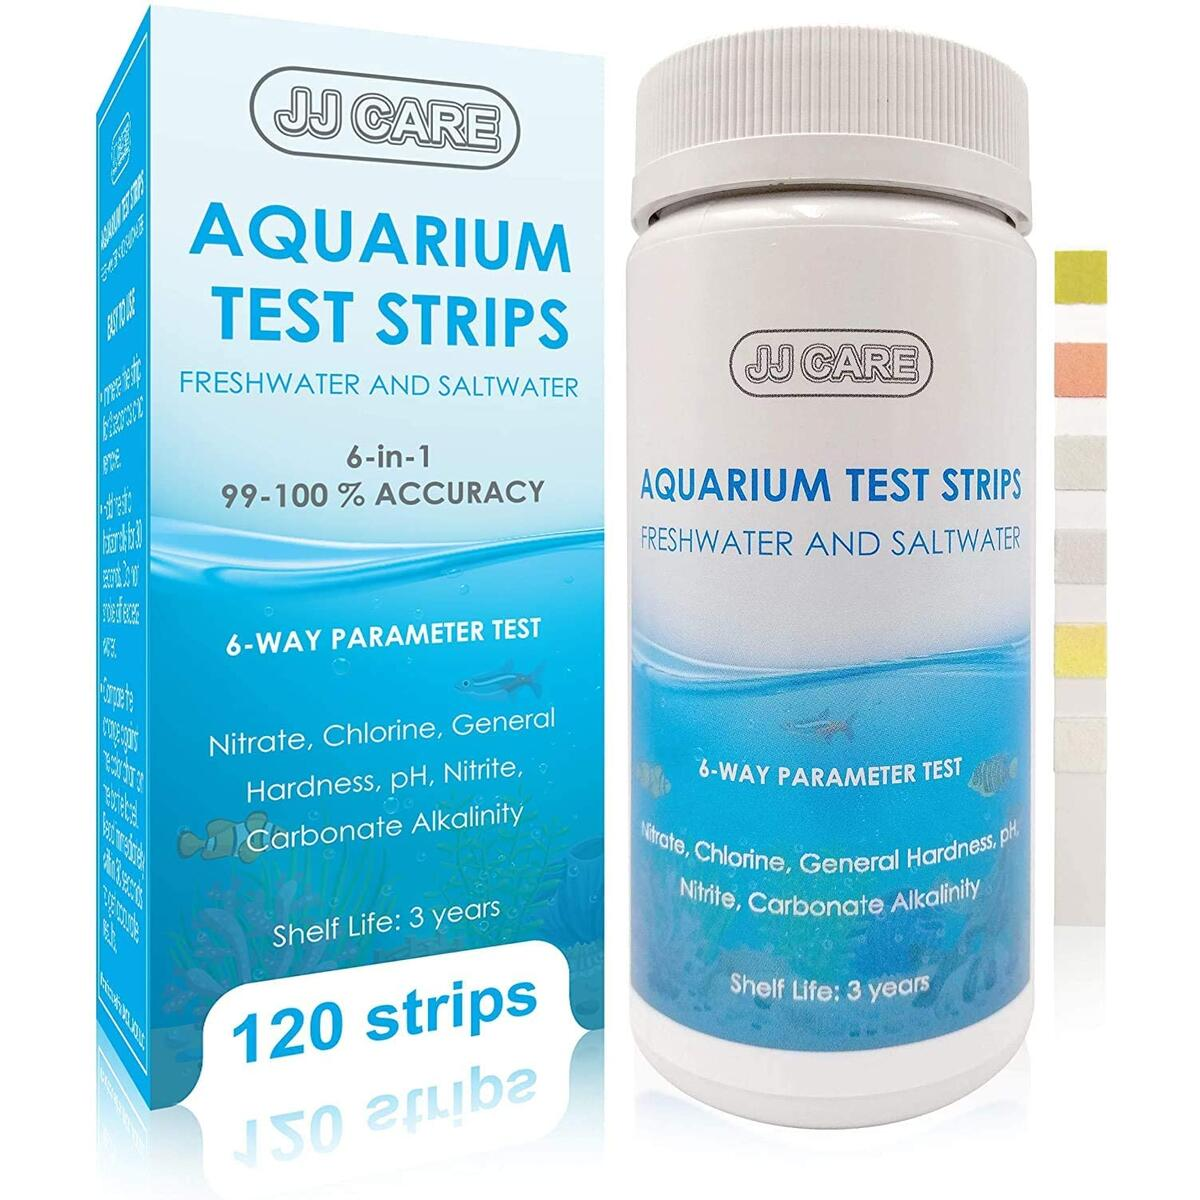 JJ CARE [120 Strips Aquarium Test Strips, 6-Way Parameter Aquarium Test Kit, Saltwater Aquarium Test Strips Freshwater, Fish Tank Test Strips, Aquarium Testing Kit